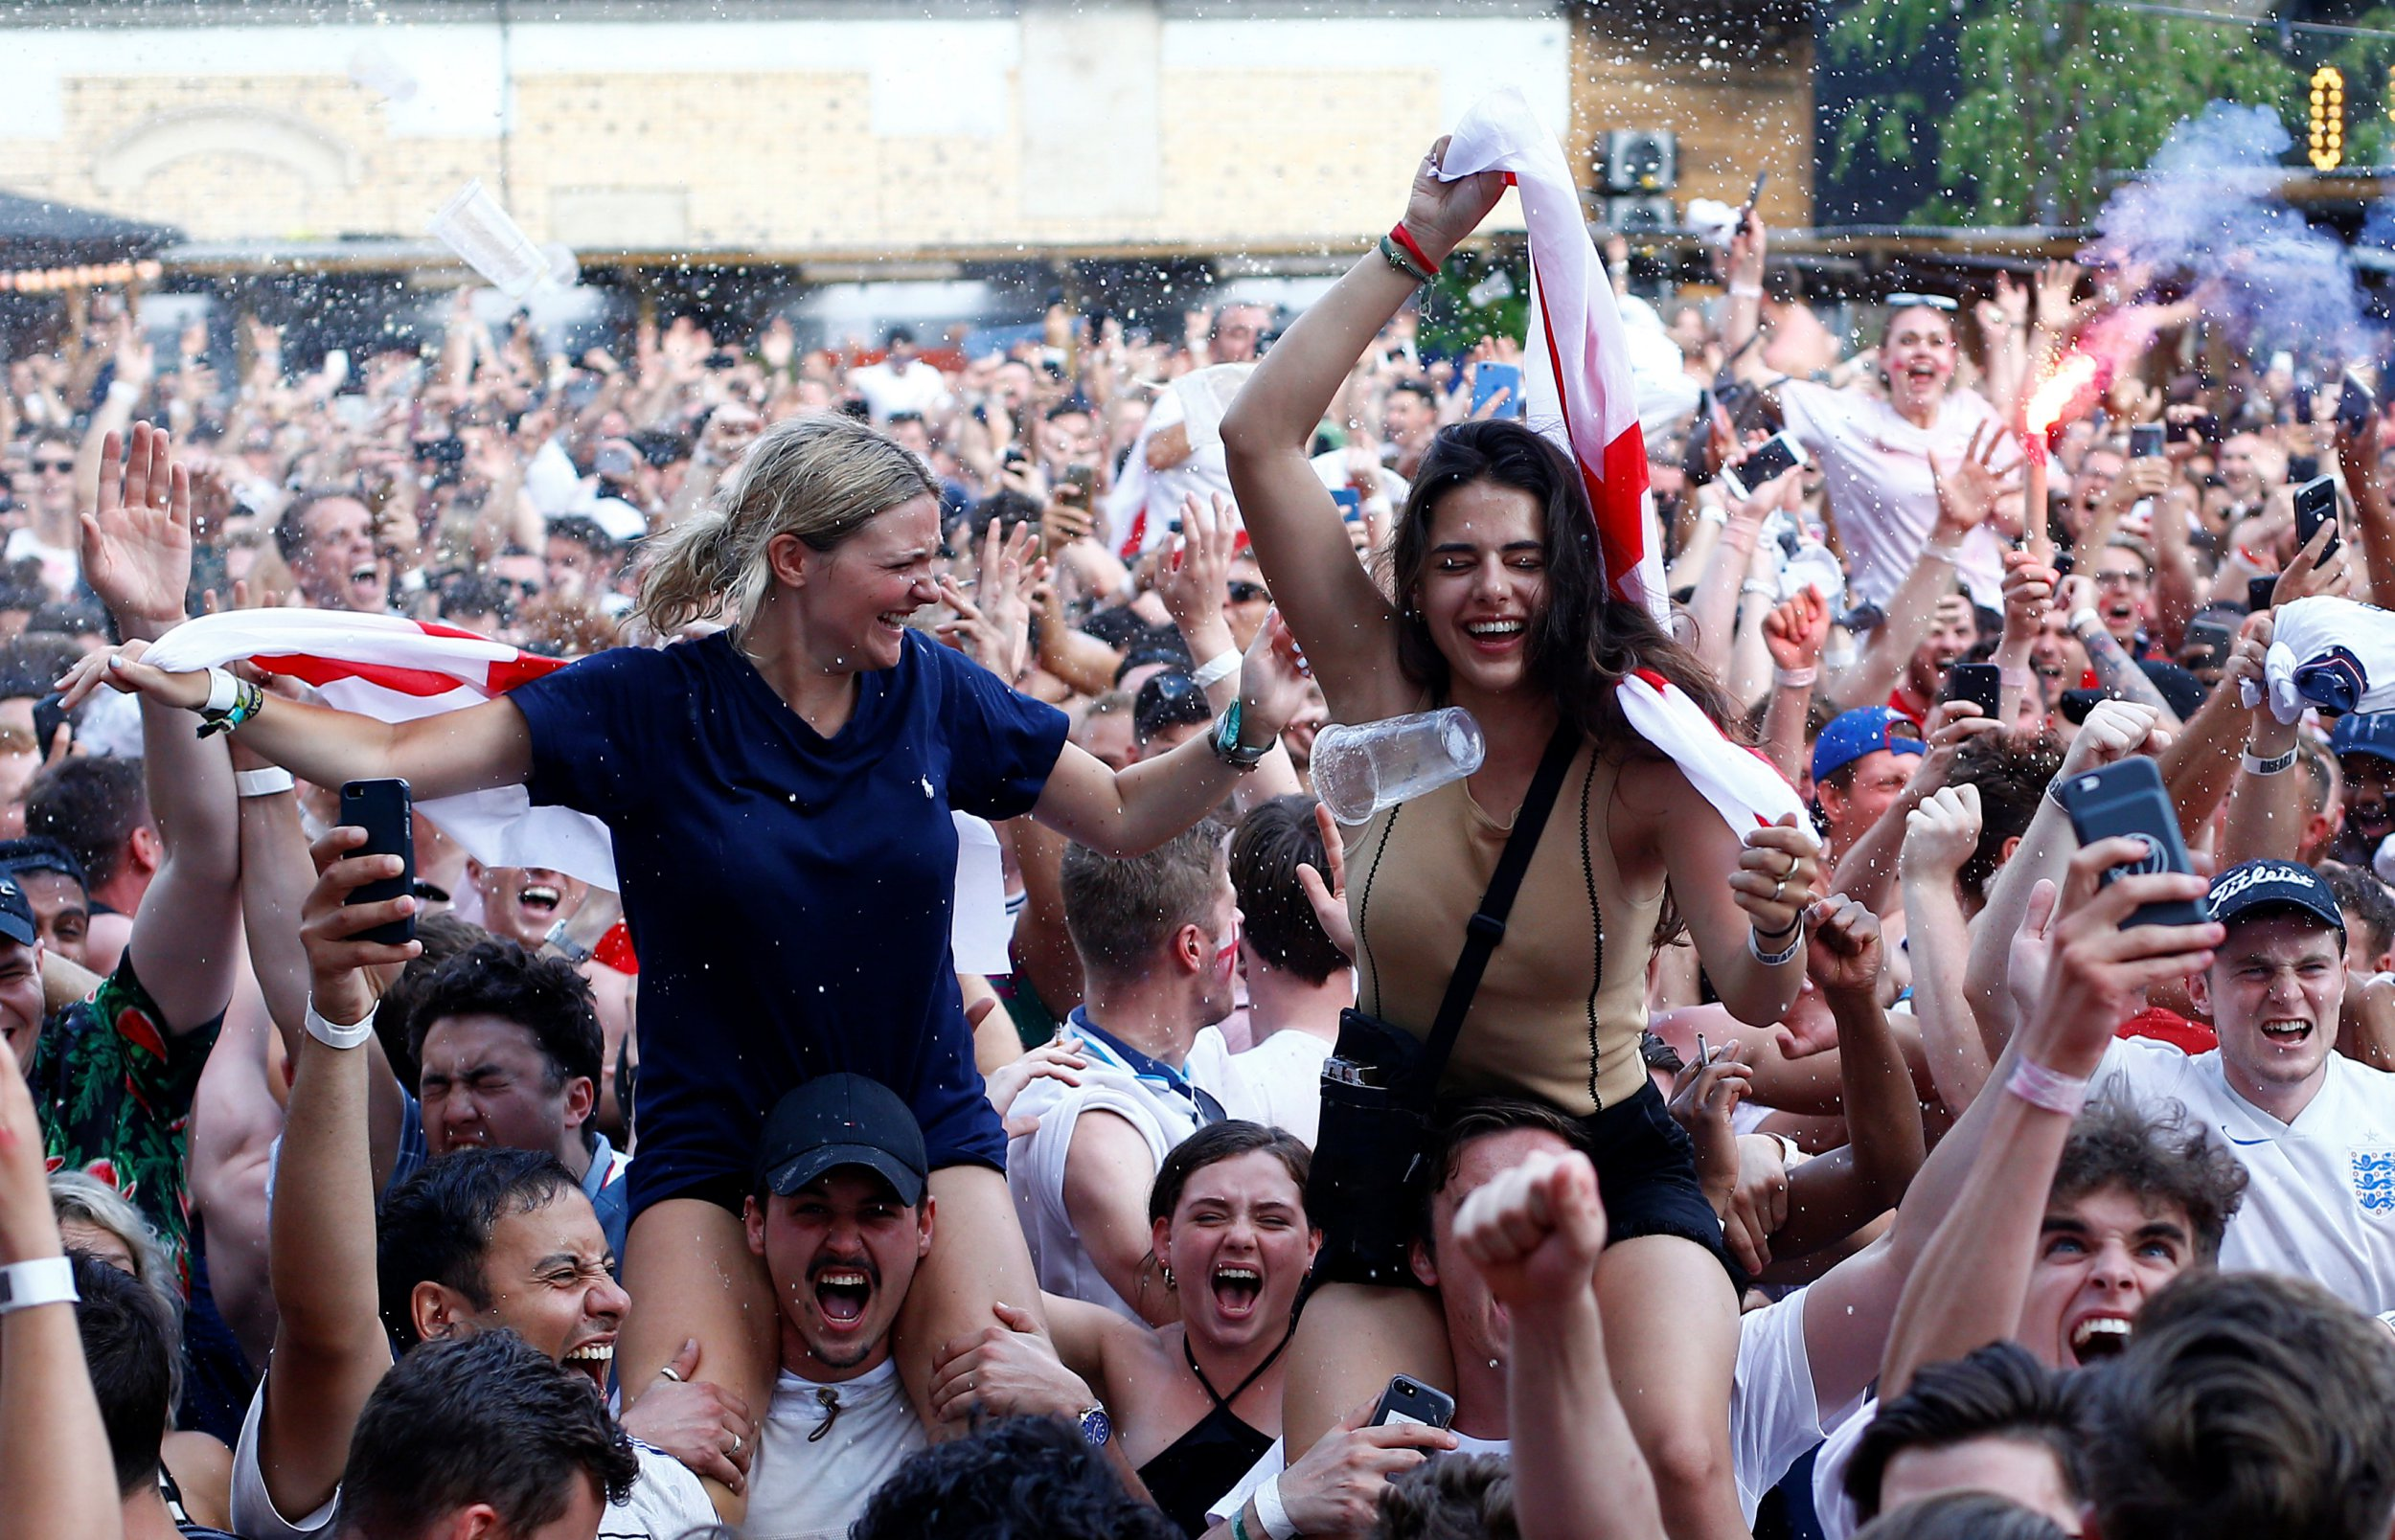 Soccer Football - World Cup - England fans watch Sweden vs England - Flat Iron Square, London, Britain - July 7, 2018 England fans celebrate at the end of the match REUTERS/Henry Nicholls